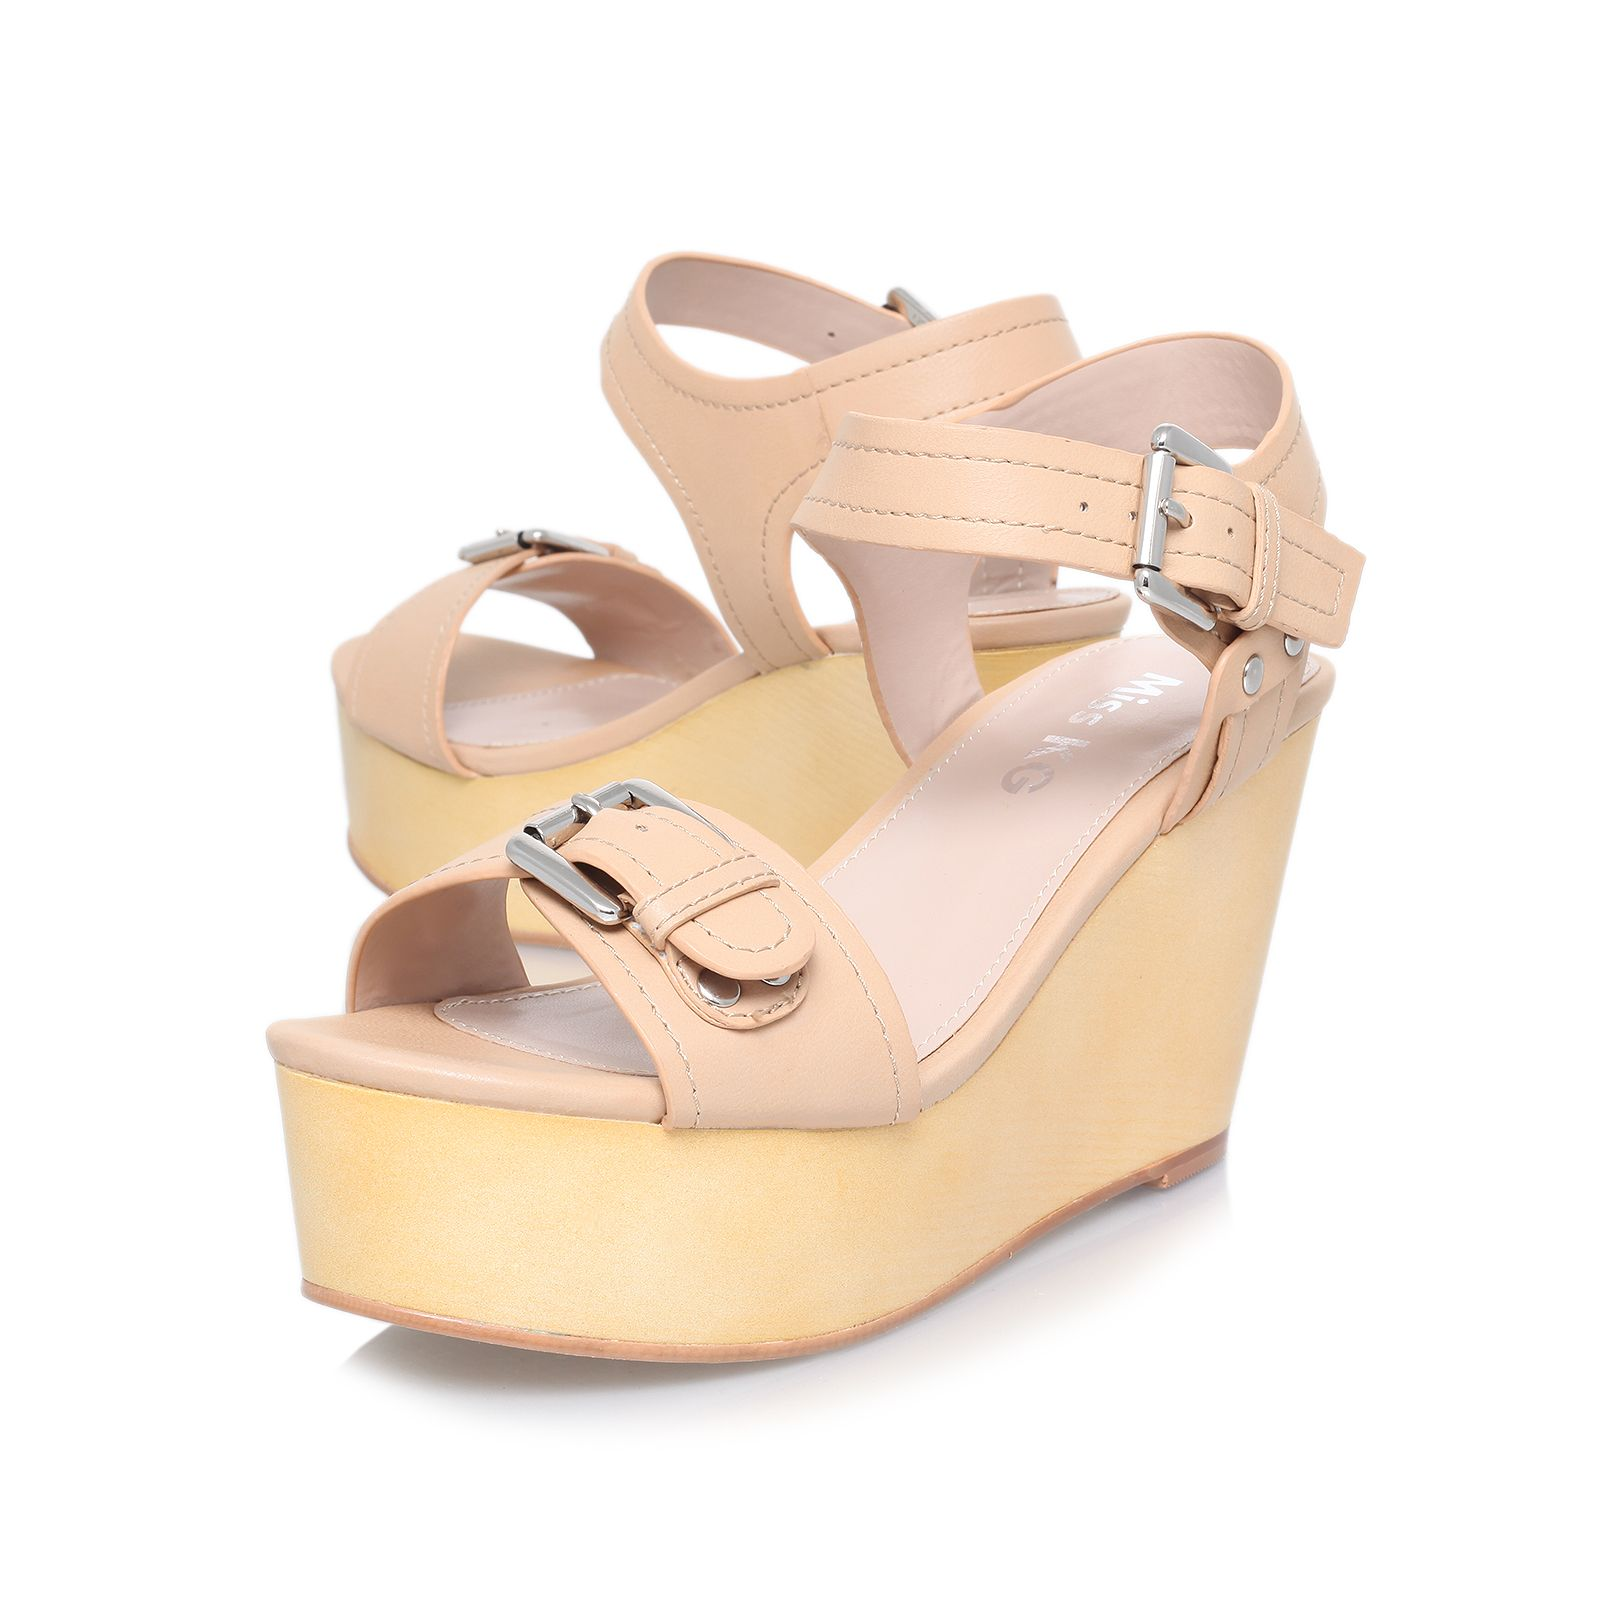 Polly high heel platform sandals